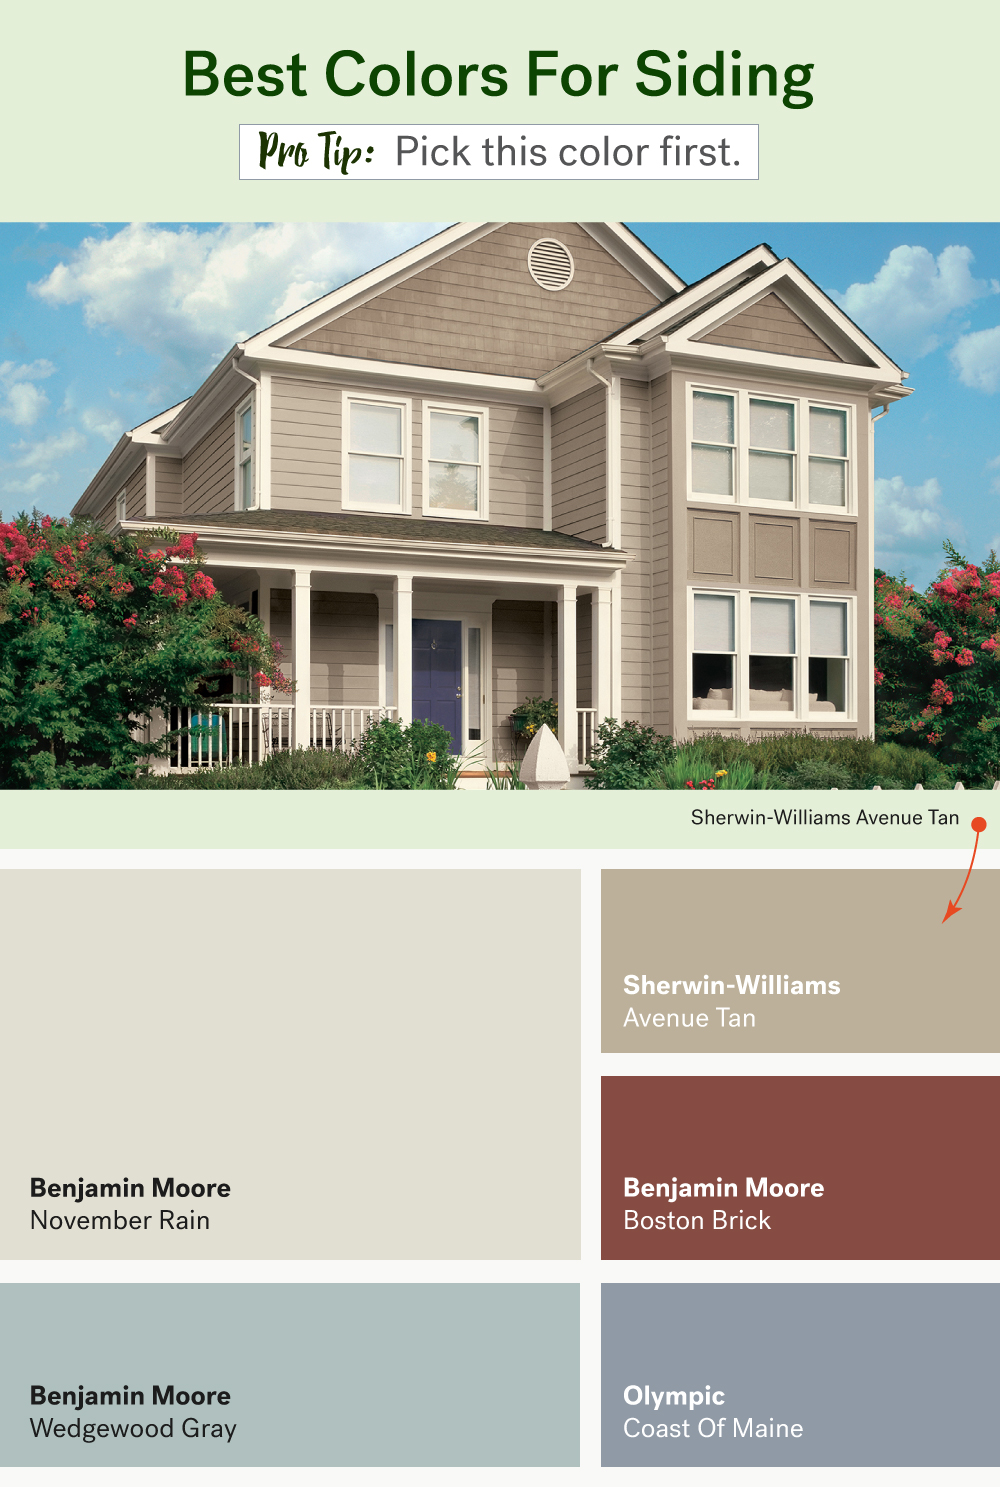 The most popular exterior paint colors huffpost life - Benjamin moore exterior color combinations ...